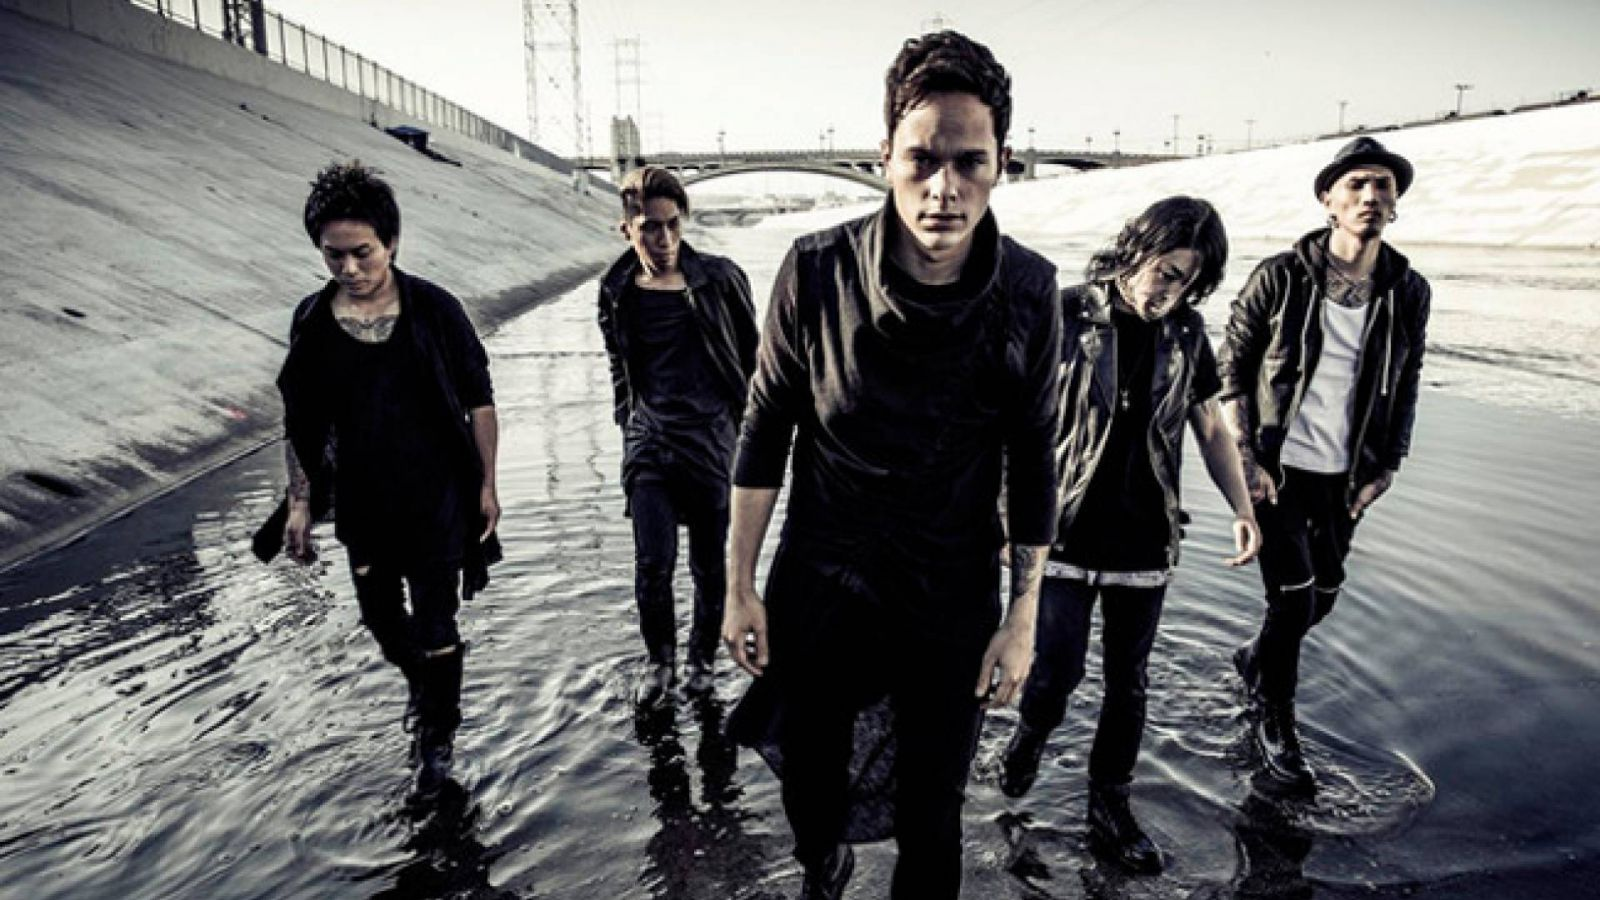 coldrain Announce New Album and World Tour © coldrain. All rights reserved.